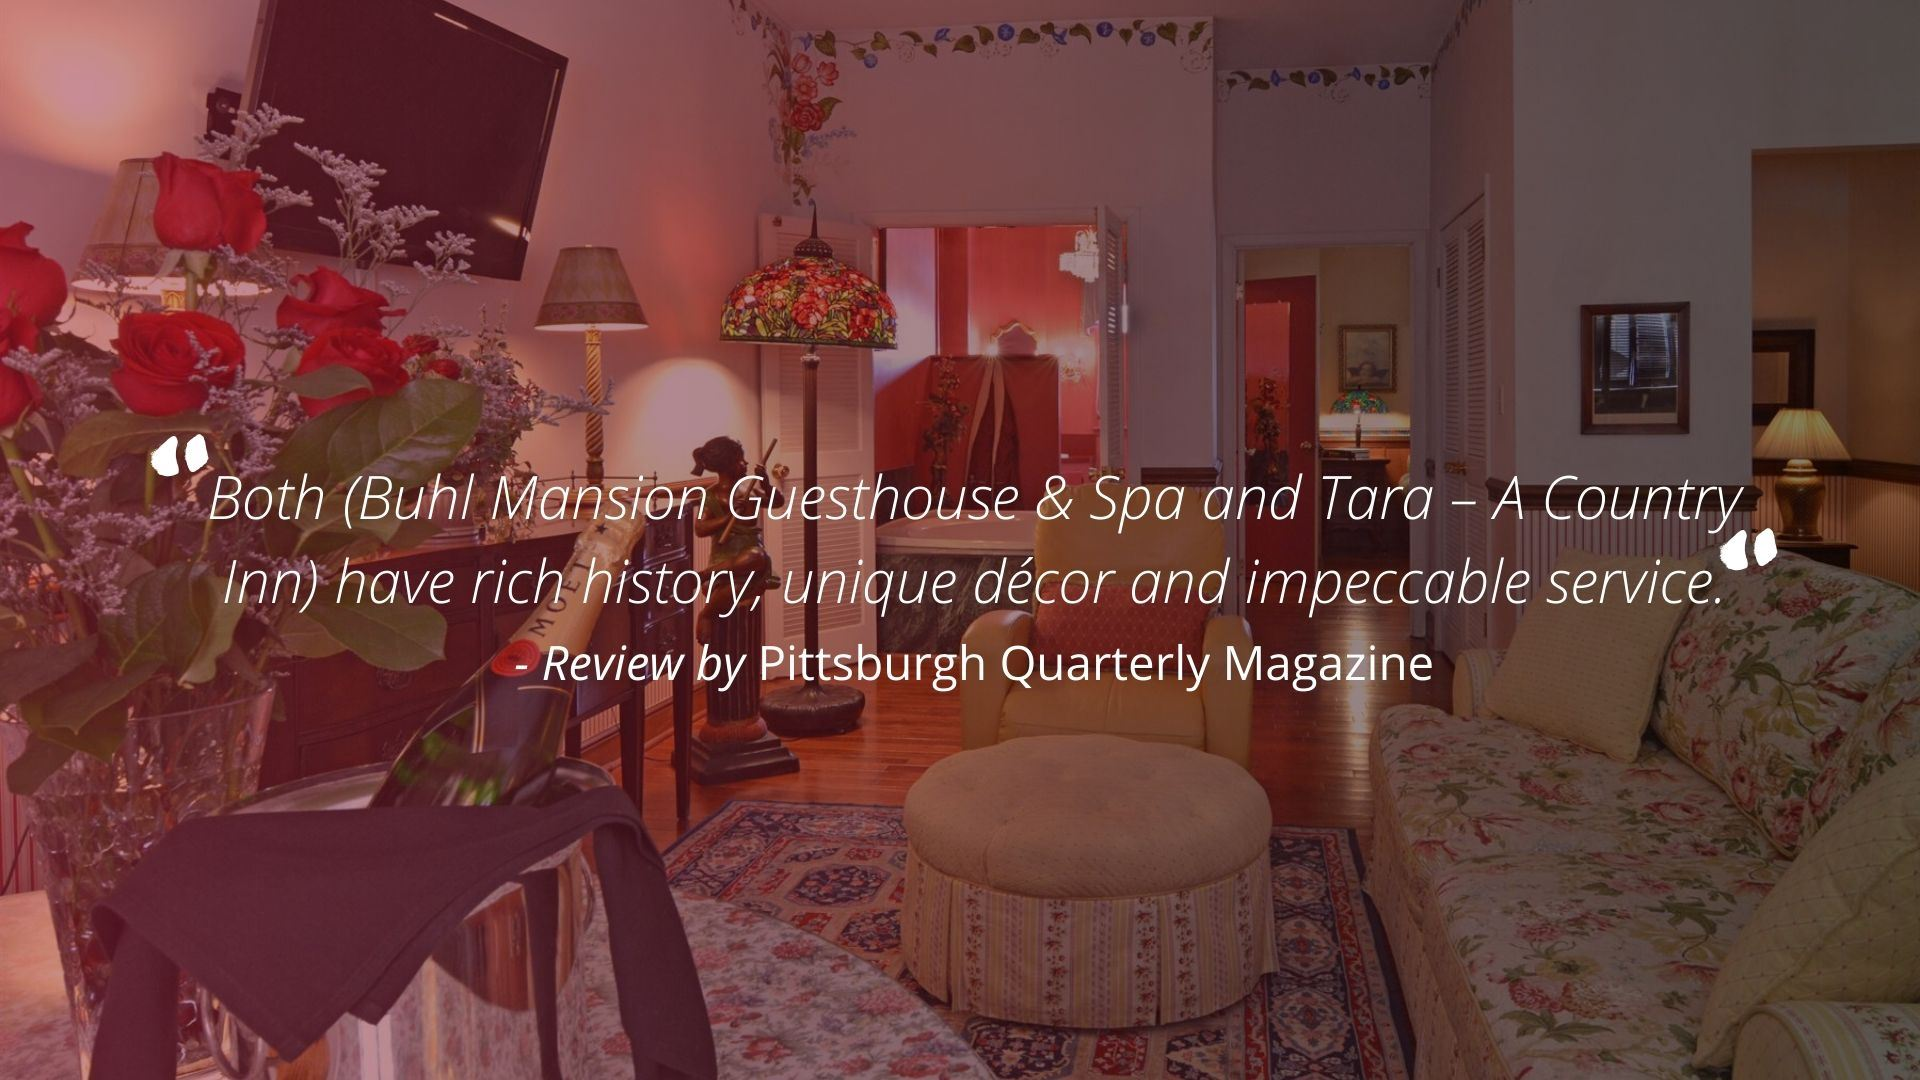 """Both (Buhl Mansion Guesthouse & Spa and Tara - A Country Inn) have rich history, unique decor and impeccable service."" - Review by Pittsburgh Quarterly Magazine"